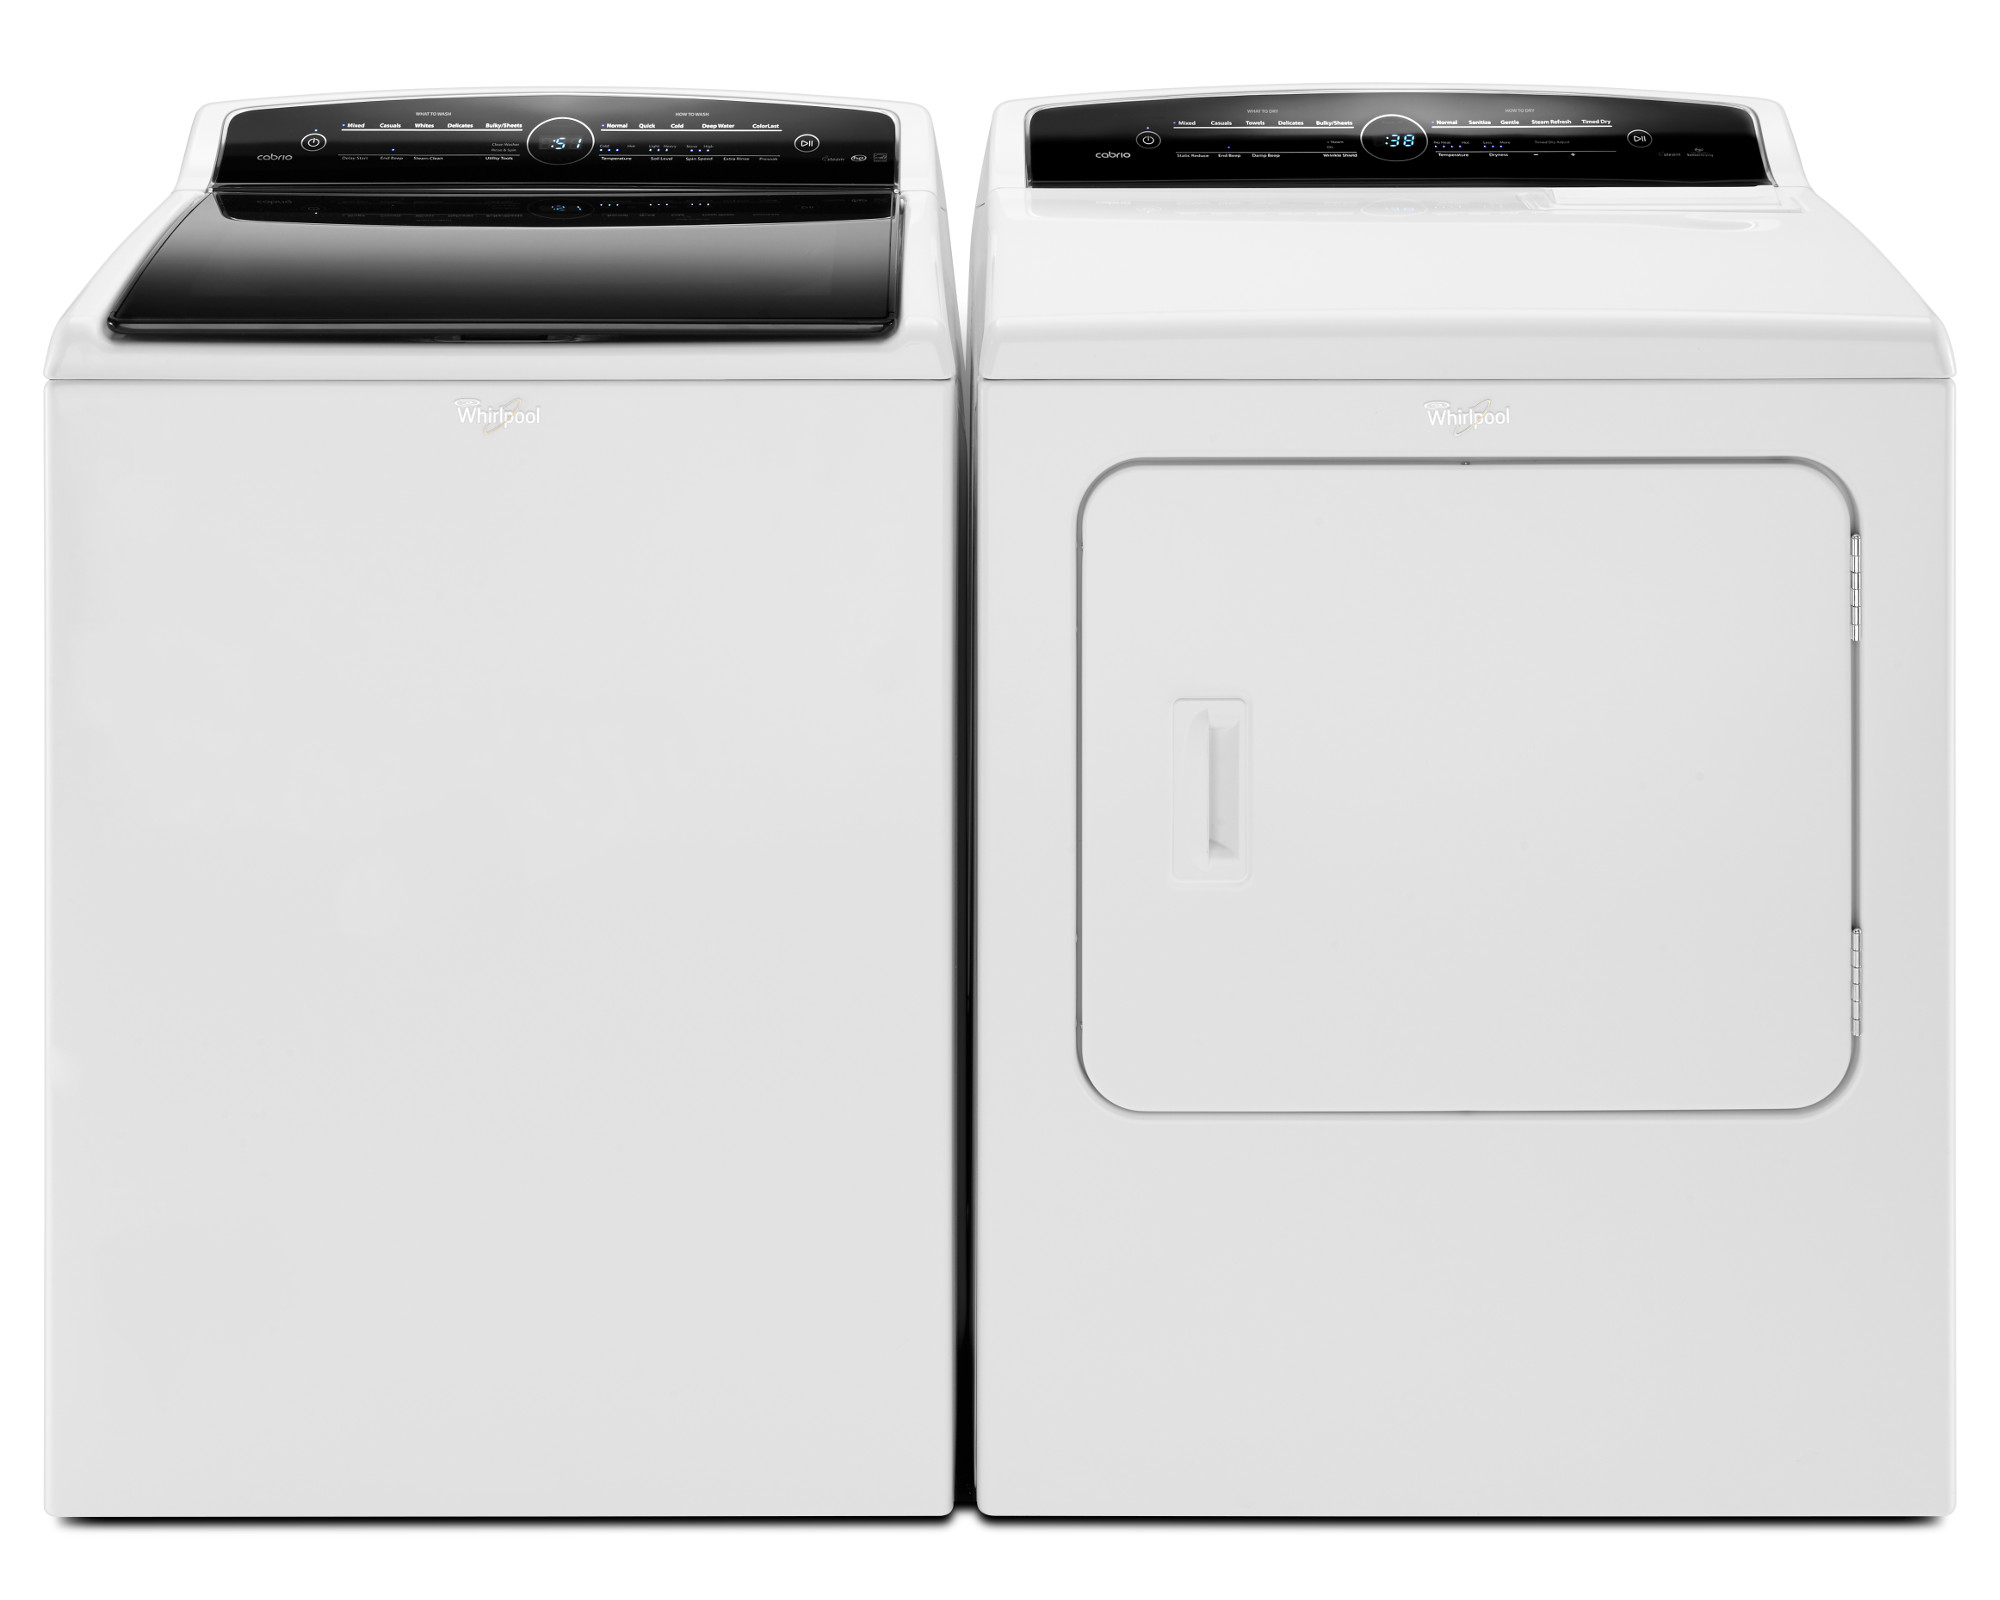 Whirlpool WTW7300DW 4.8 cu. ft. Cabrio® Top Load Washer with Steam - White